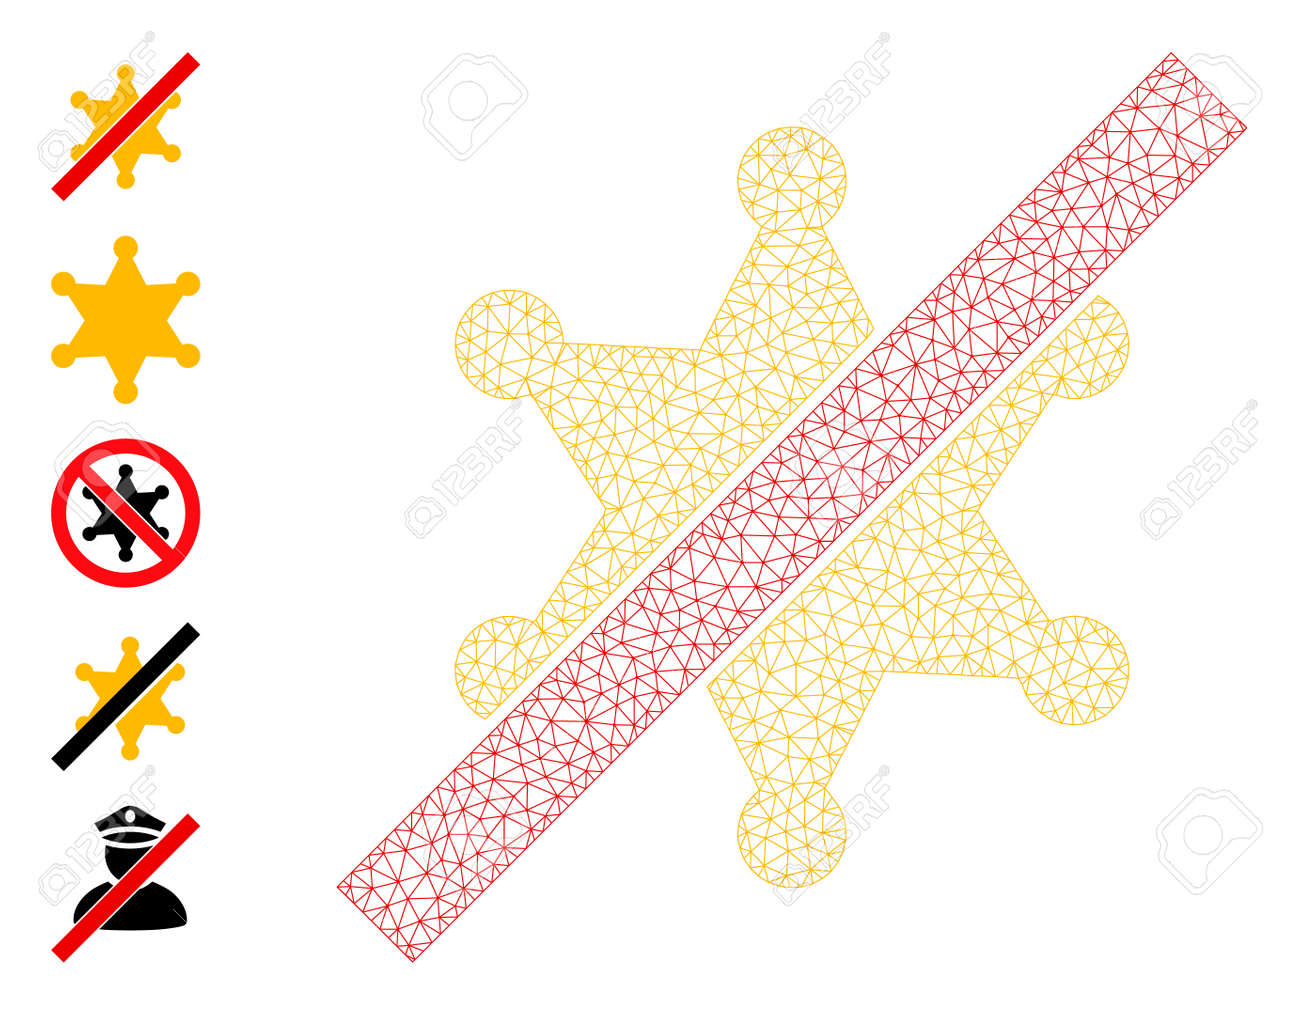 Mesh polygonal no sheriff star icon with simple symbols created from no sheriff star vector graphics. Carcass mesh polygonal no sheriff star. Wire carcass 2D mesh in vector format. - 172393994